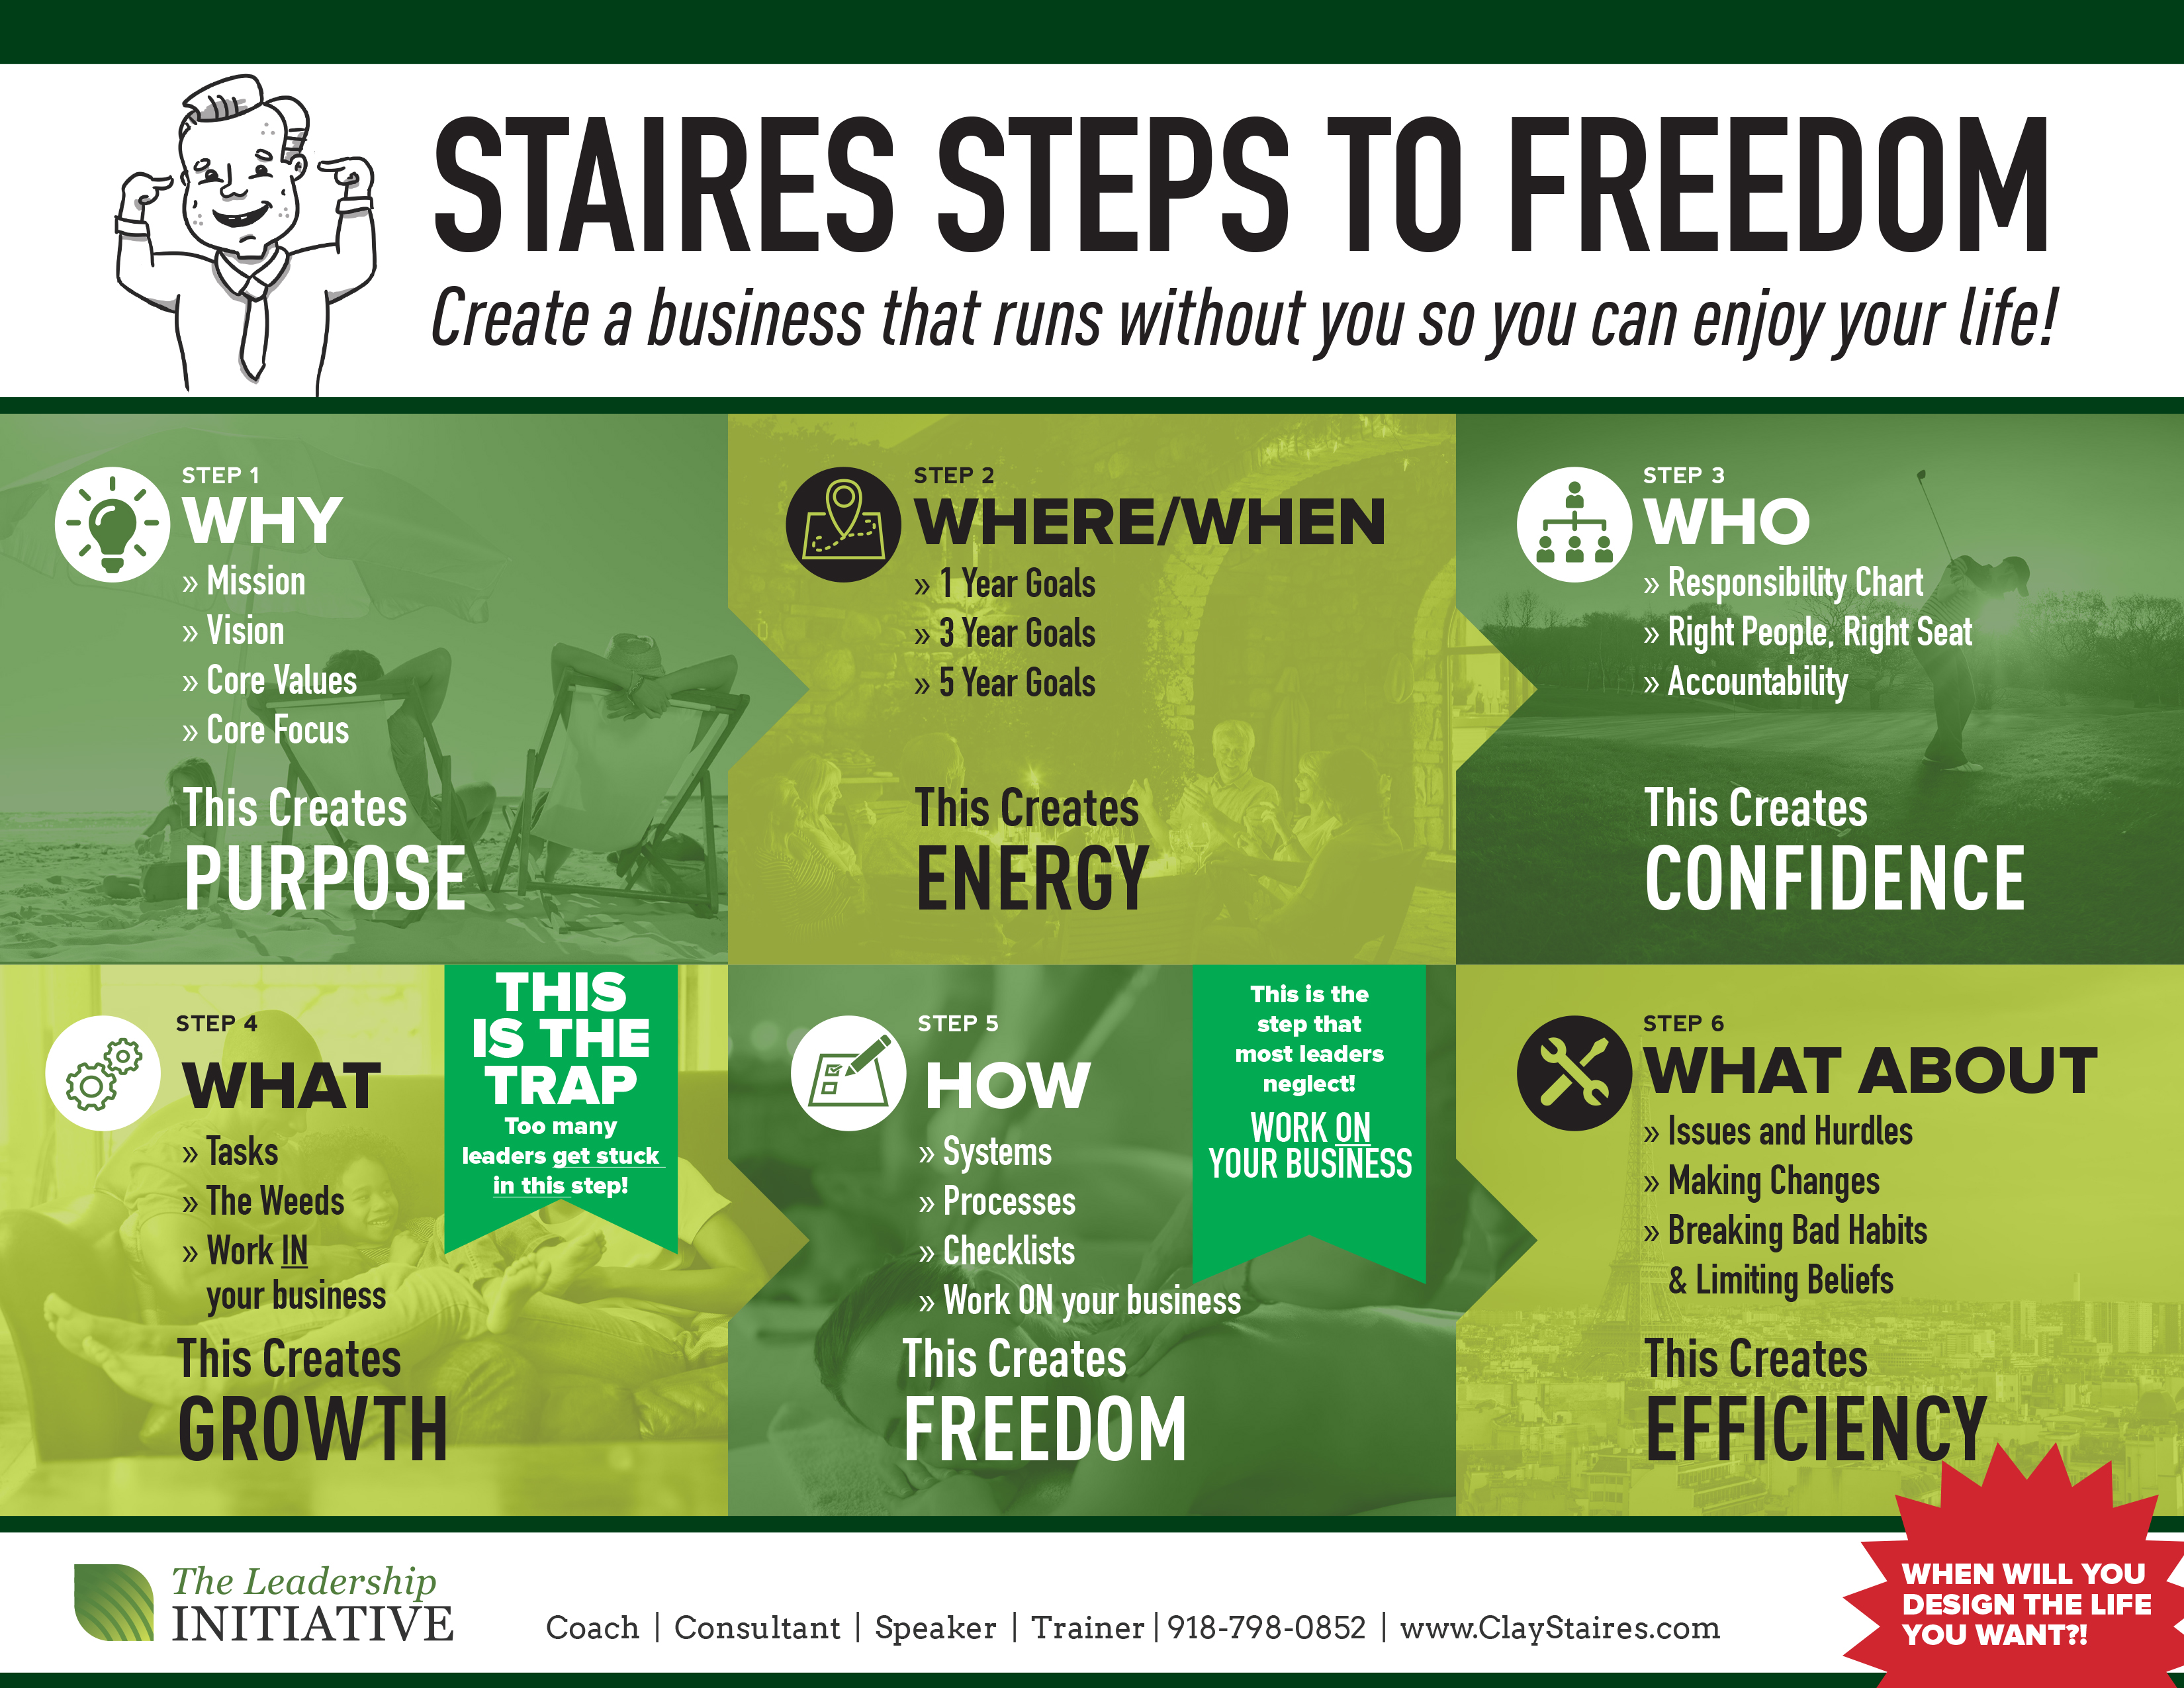 Onesheet Staire Steps Version 8 Clay Staires.indd